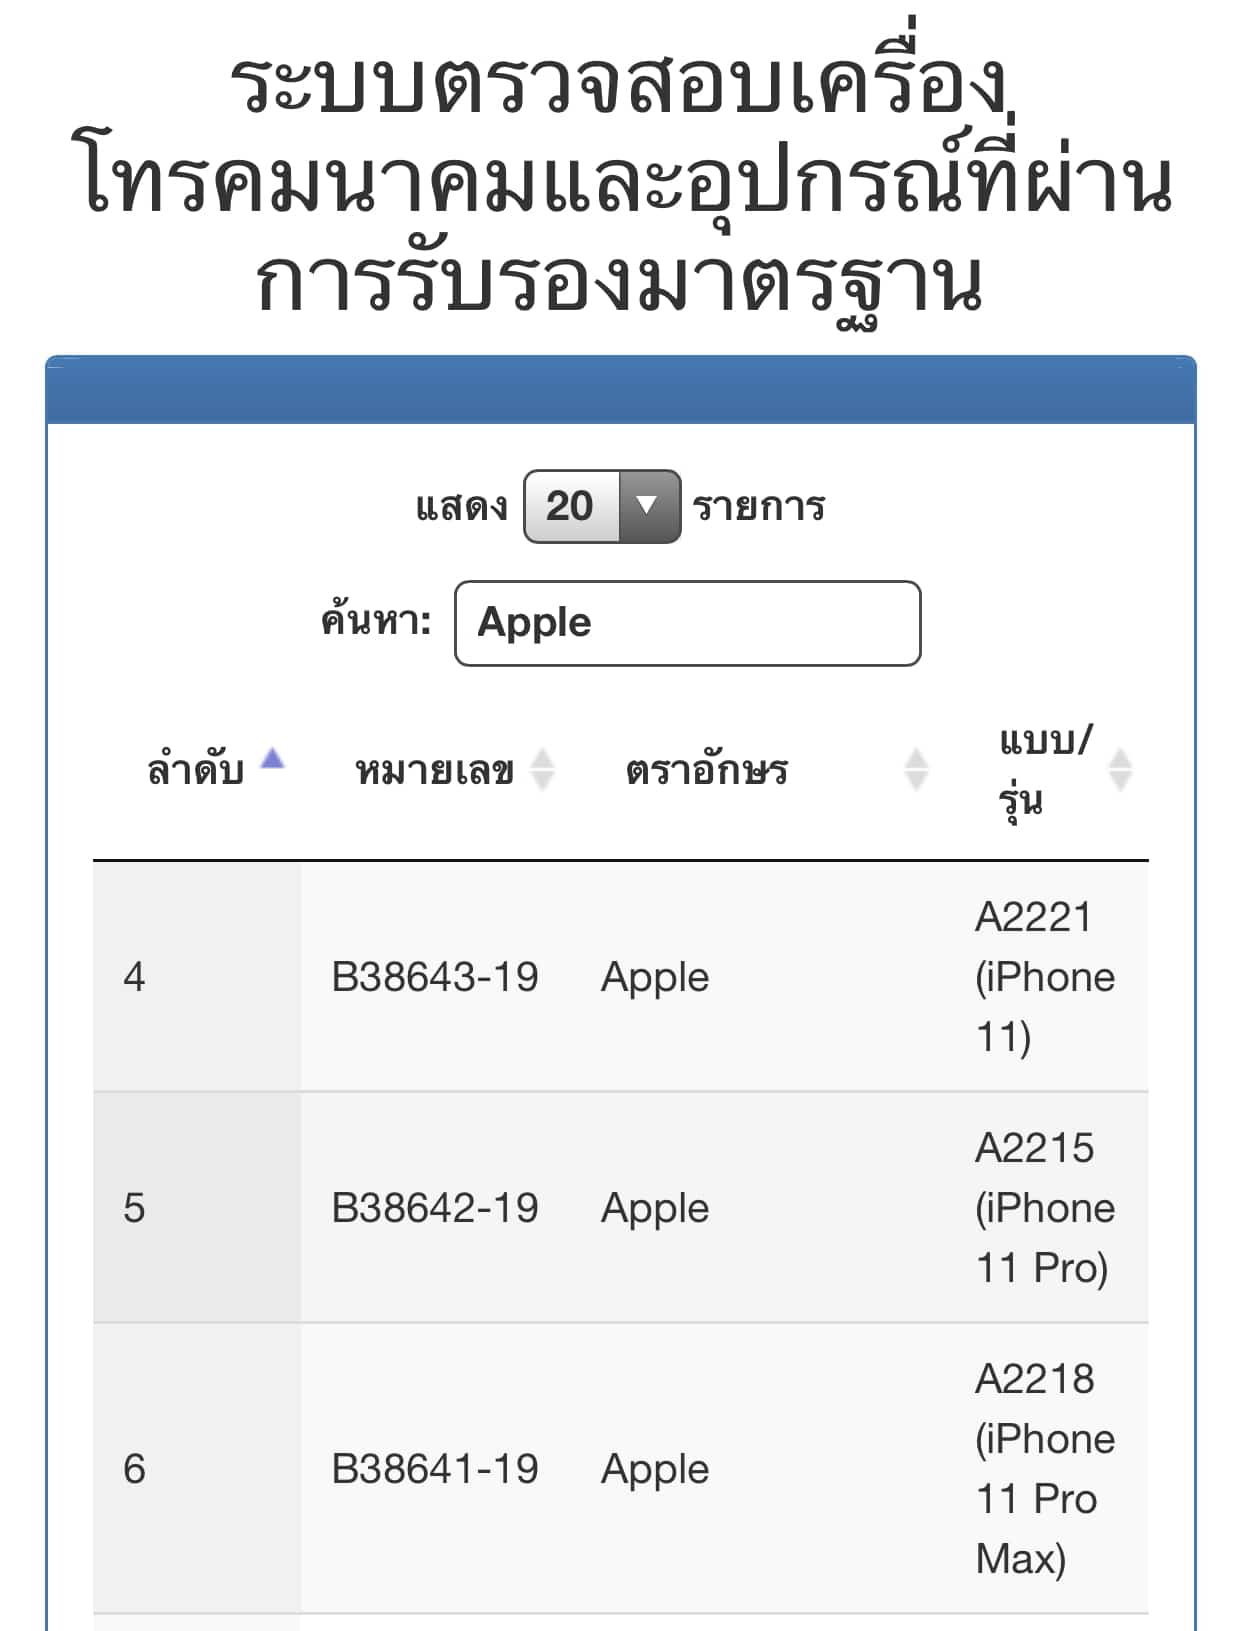 Nbtc Approve Iphone 11 Iphone 11 Pro Iphone 11 Pro Max Th Img 1